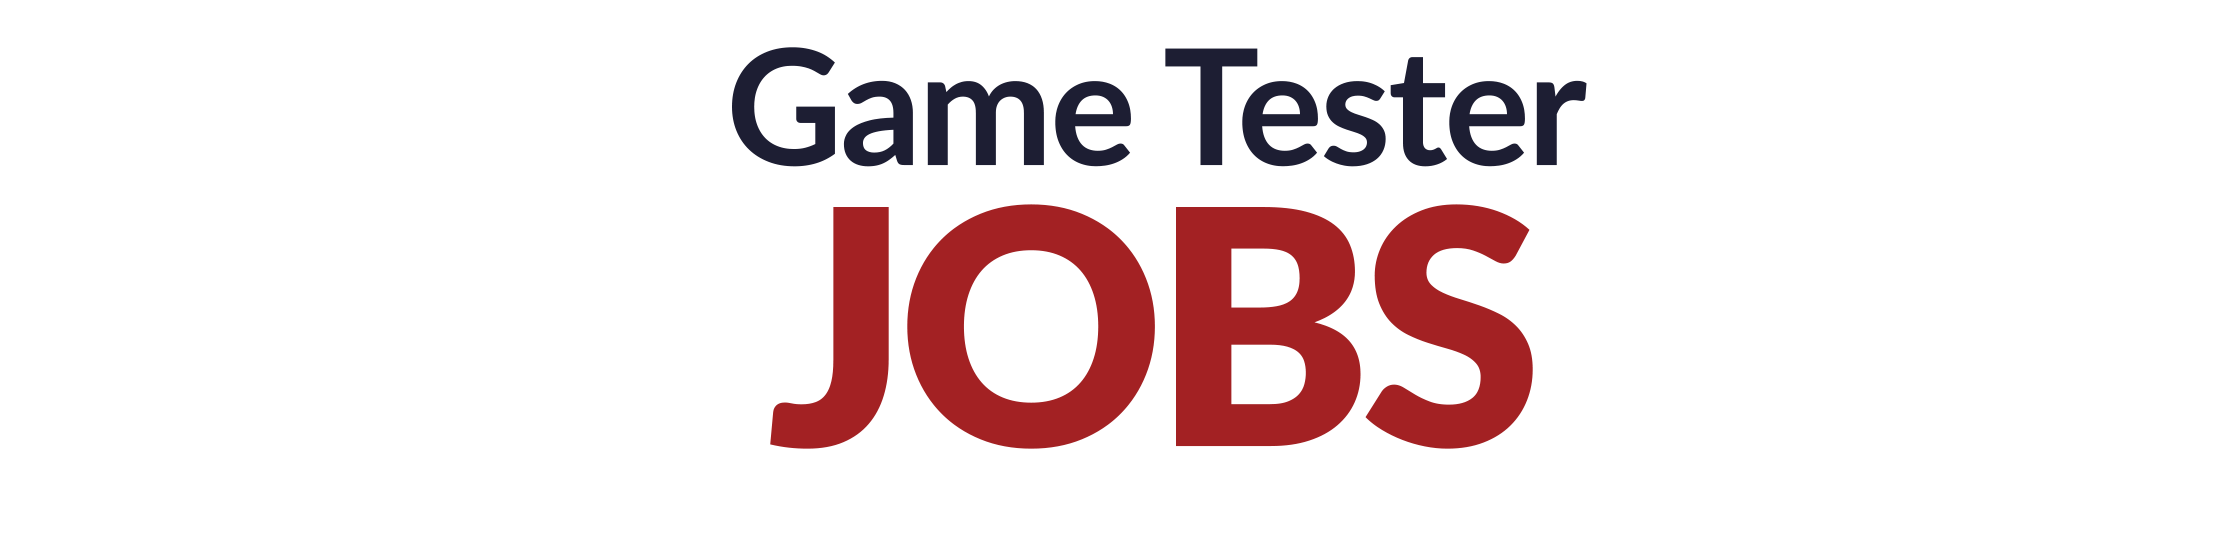 how to get a game tester job software testing certification game tester jobs